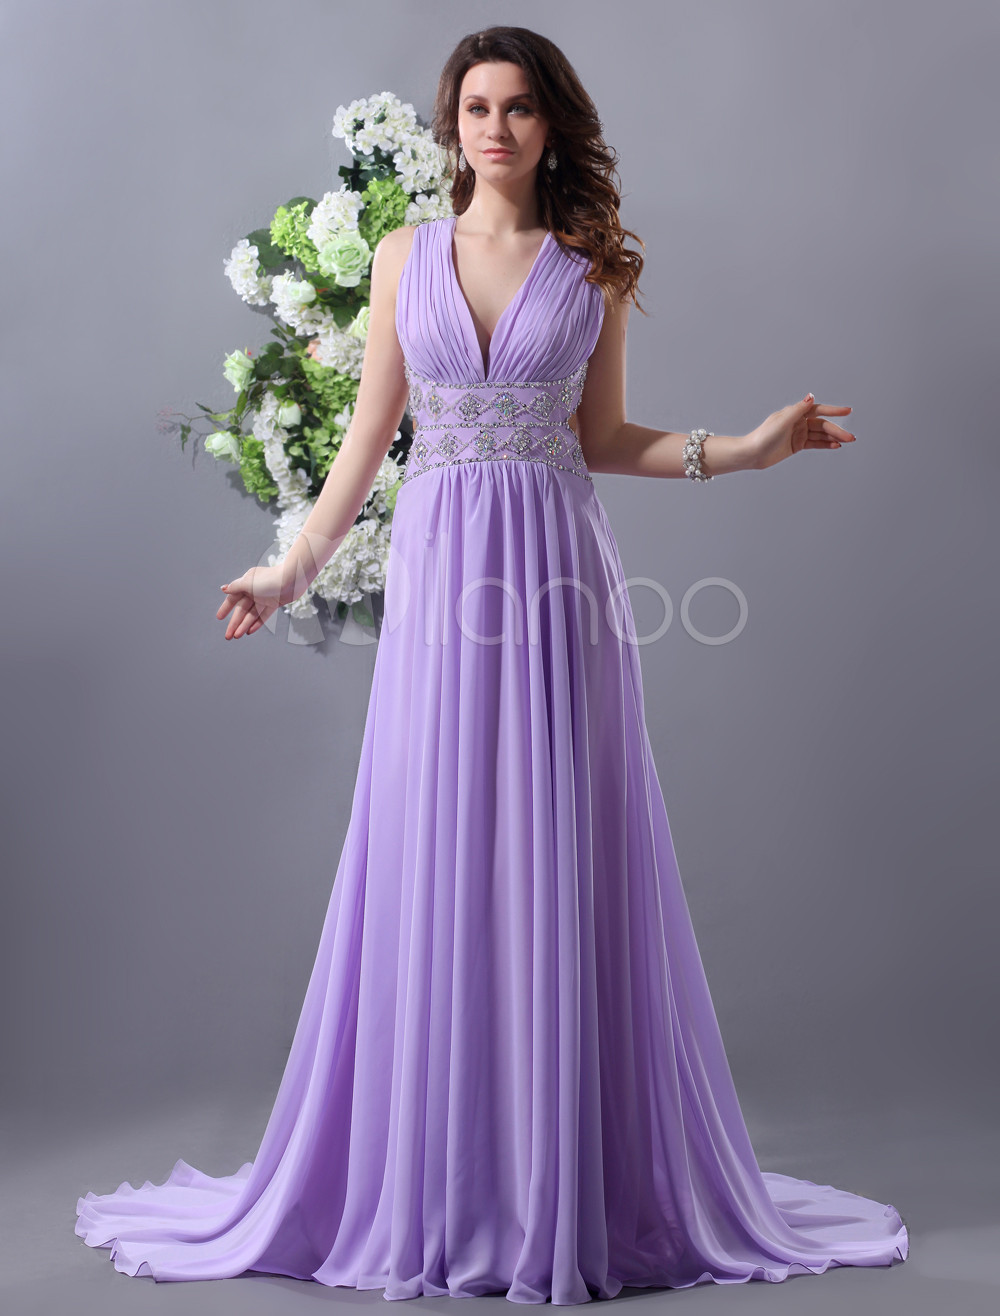 Lilac Evening Dress V Neck Sleeveless Chiffon Formal Dress Beading Back Design Occasion Dress With Court Train  Milanoo